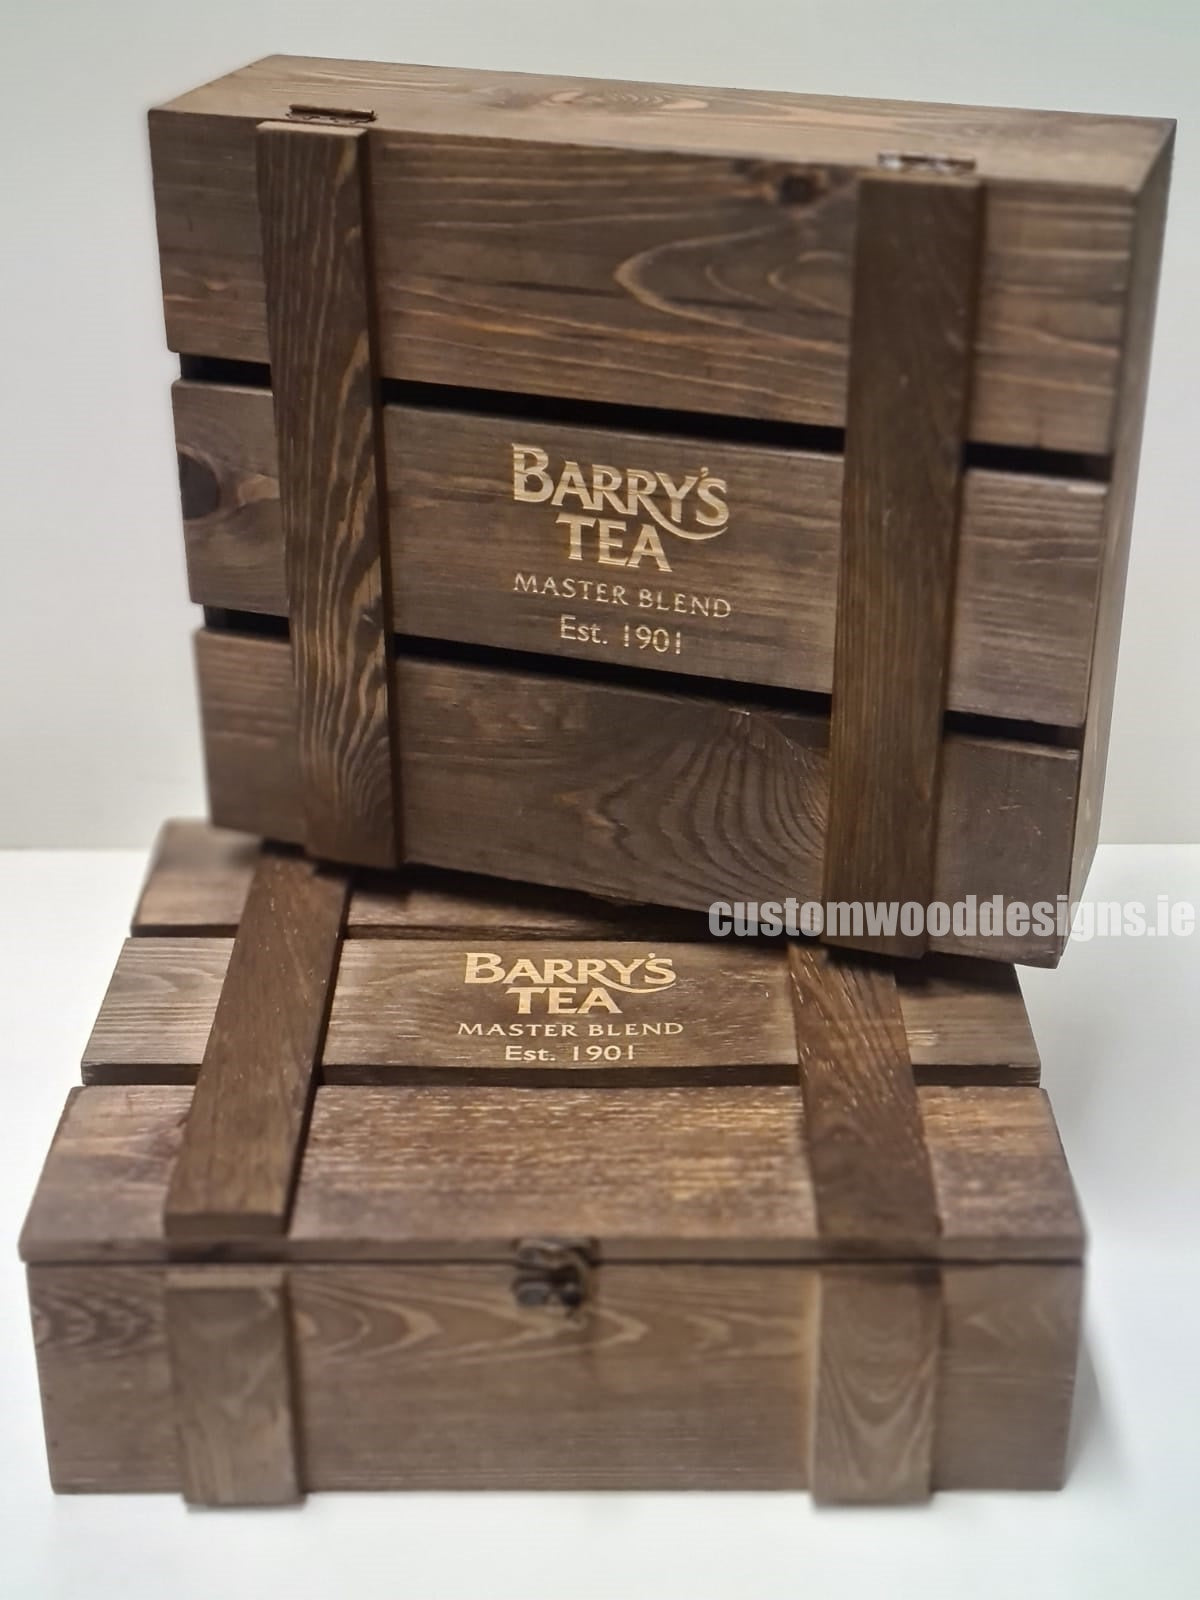 Barry's Tea Custom Wood Designs Branded wooden boxes Ireland Gift Boxes Wood Crate supplier